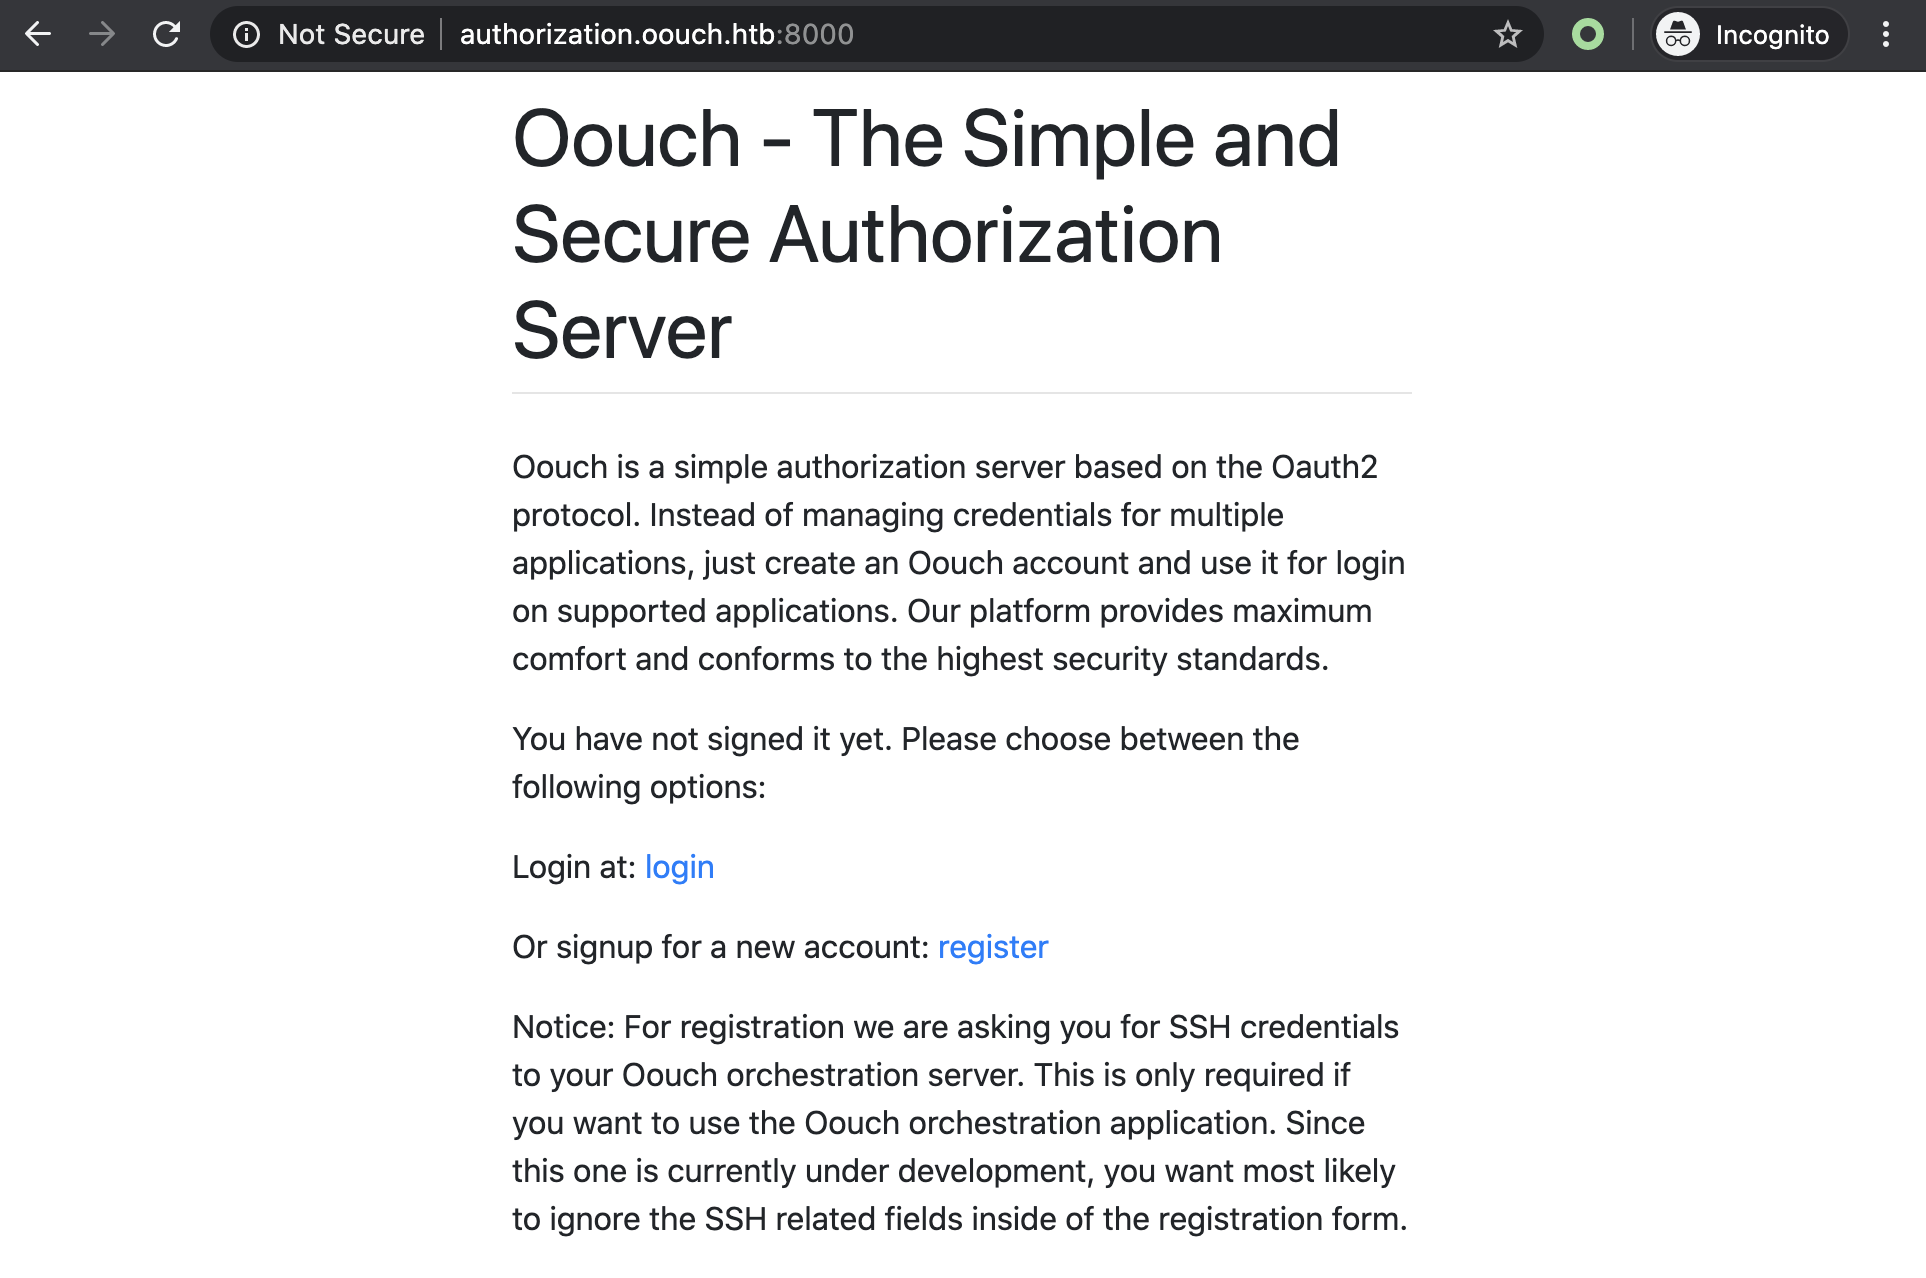 oouch authorization